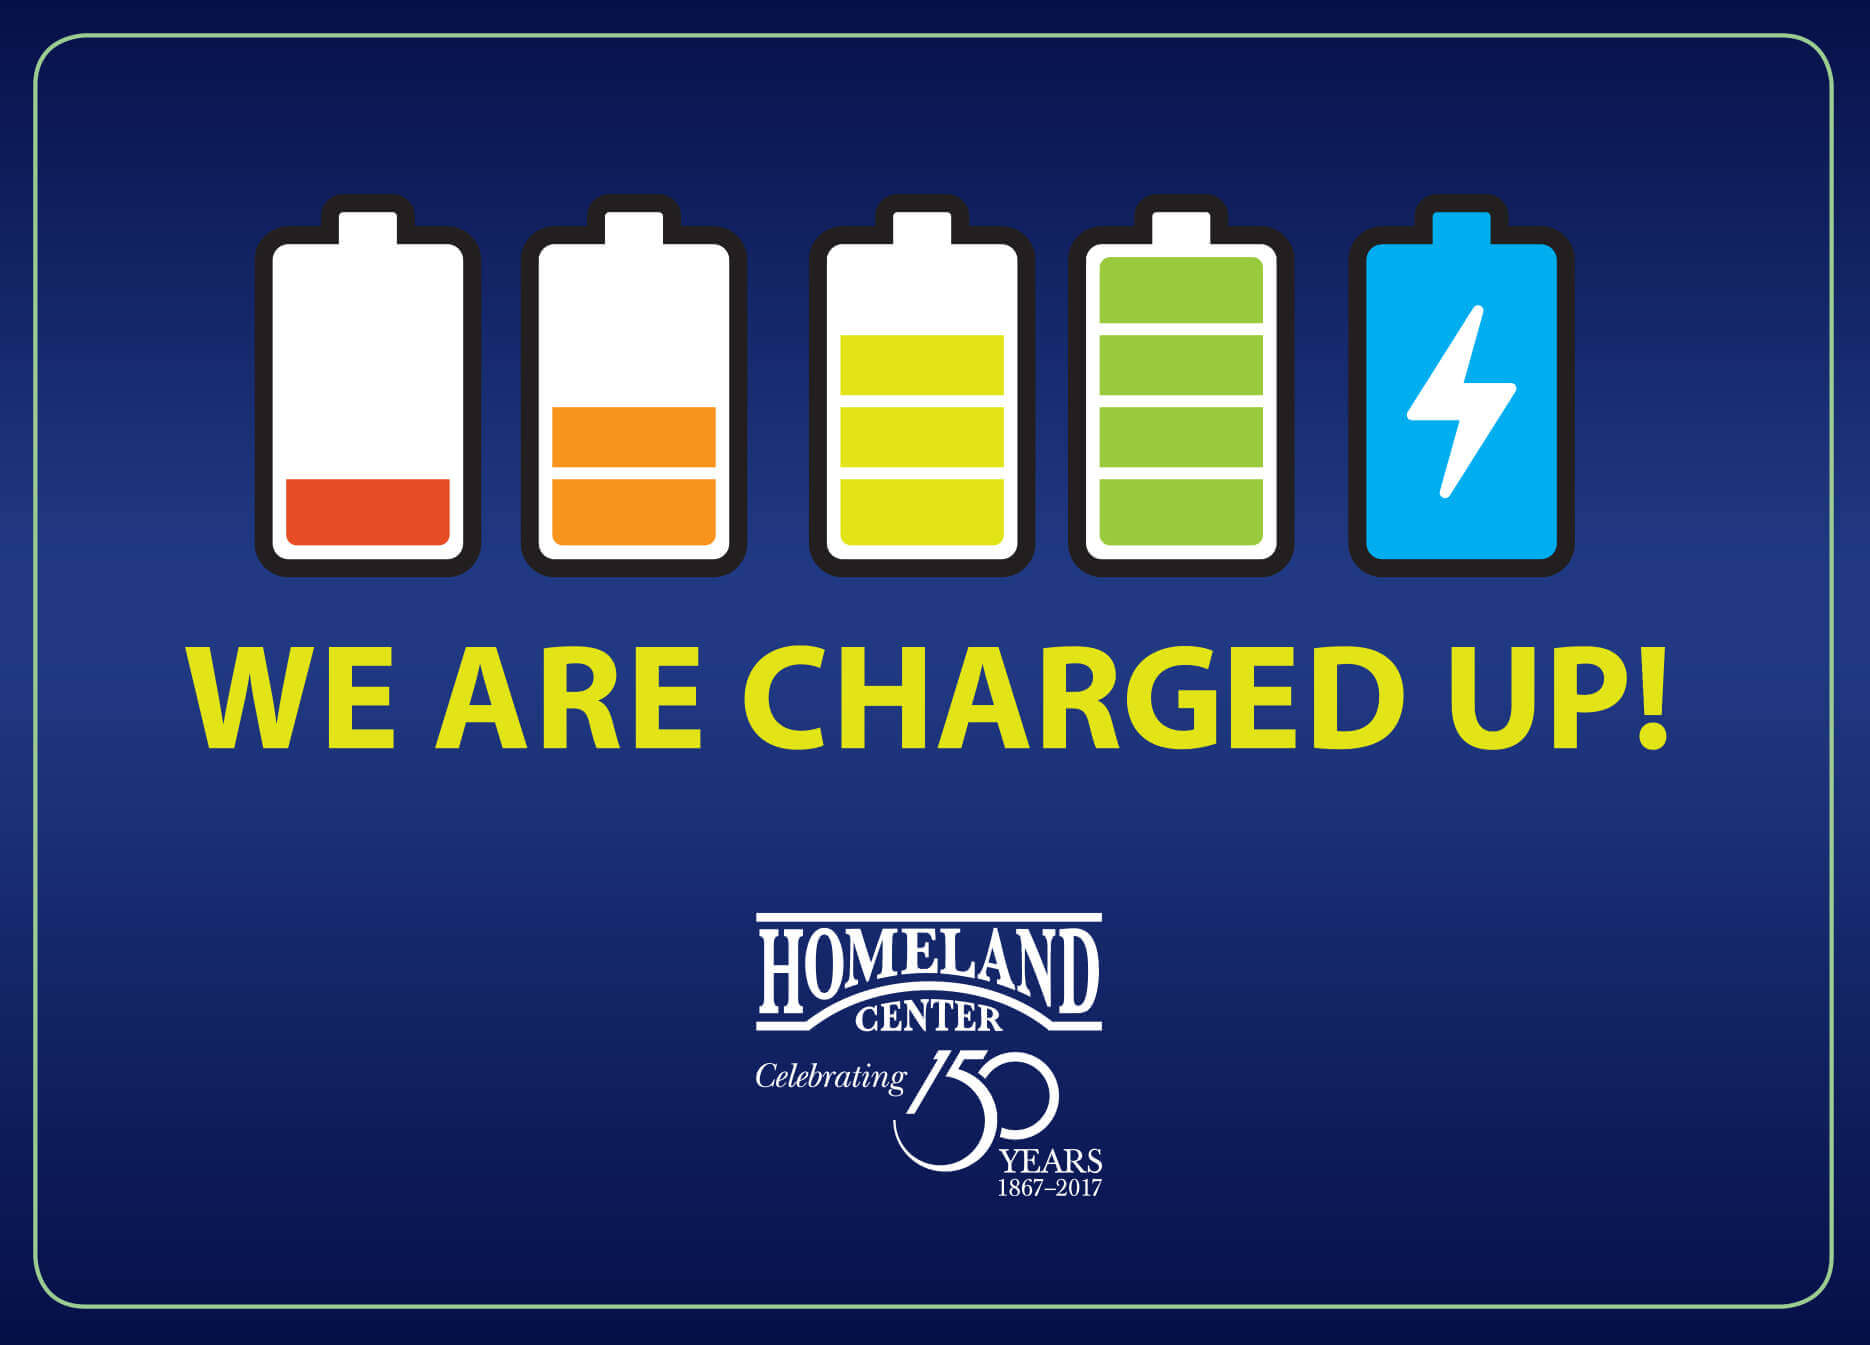 We are charged up!